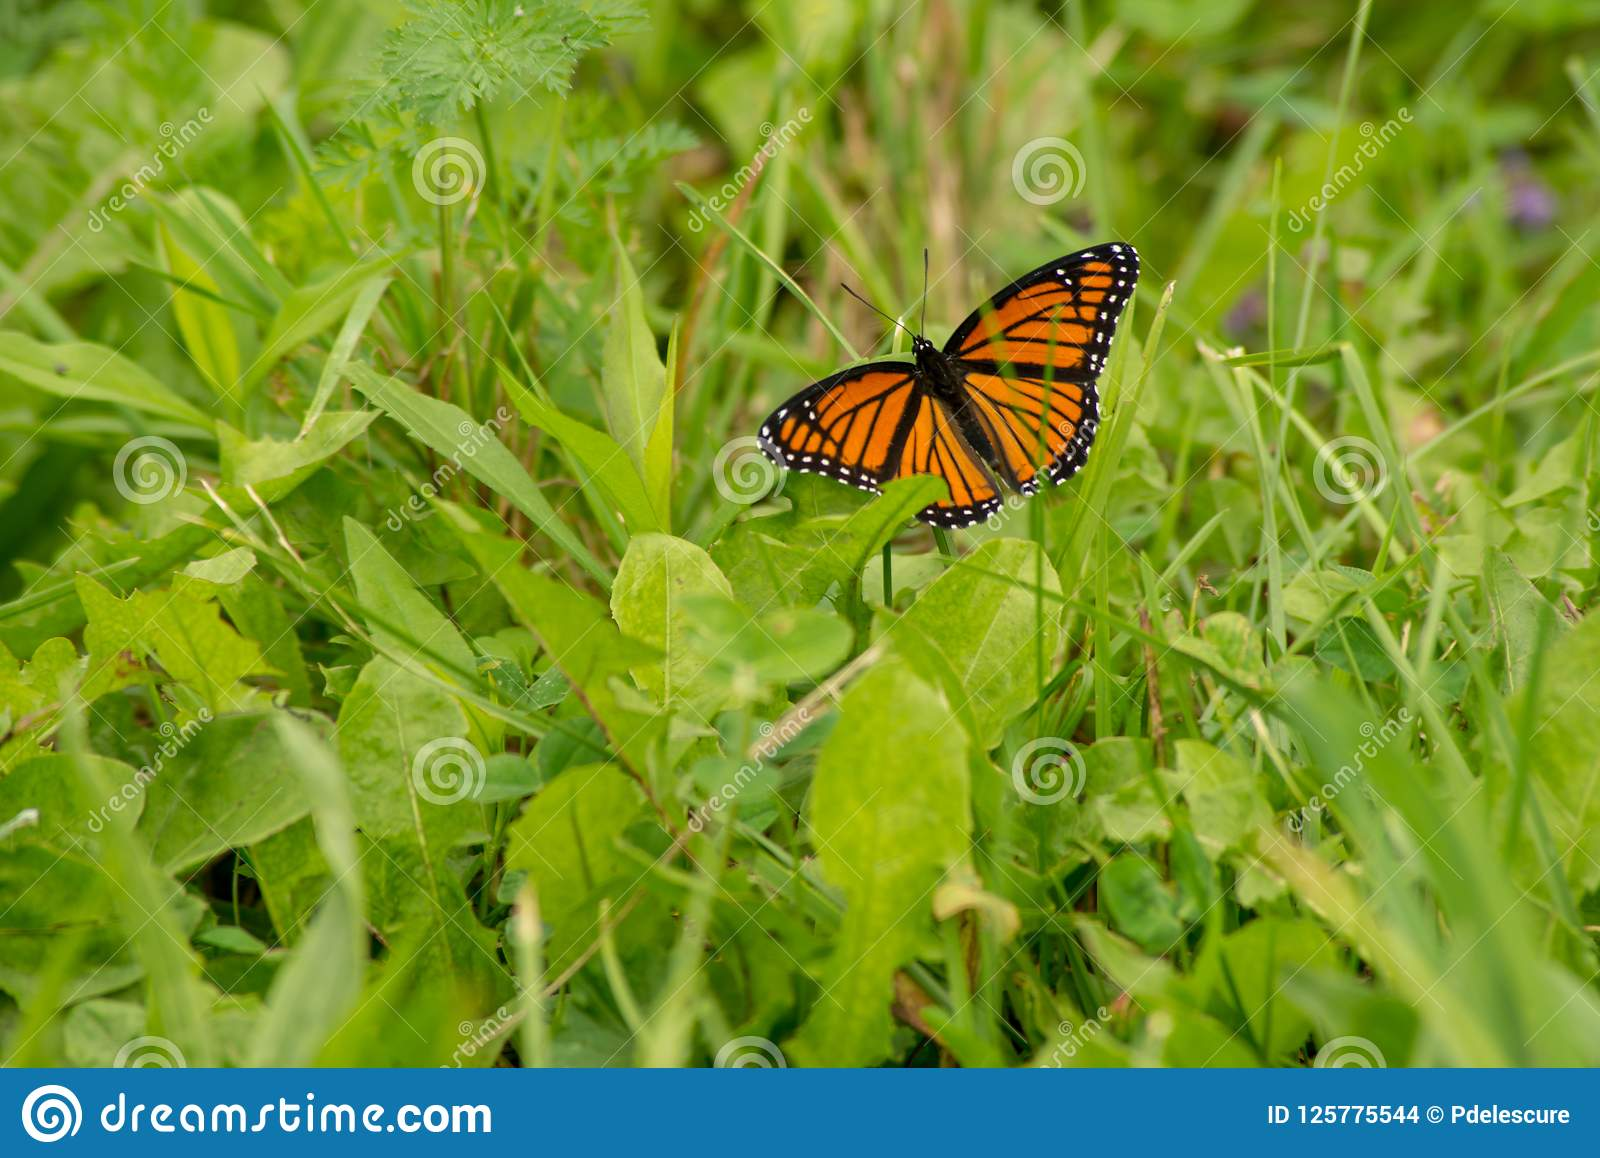 Monarch butterfly resting on blade of grass in the sun